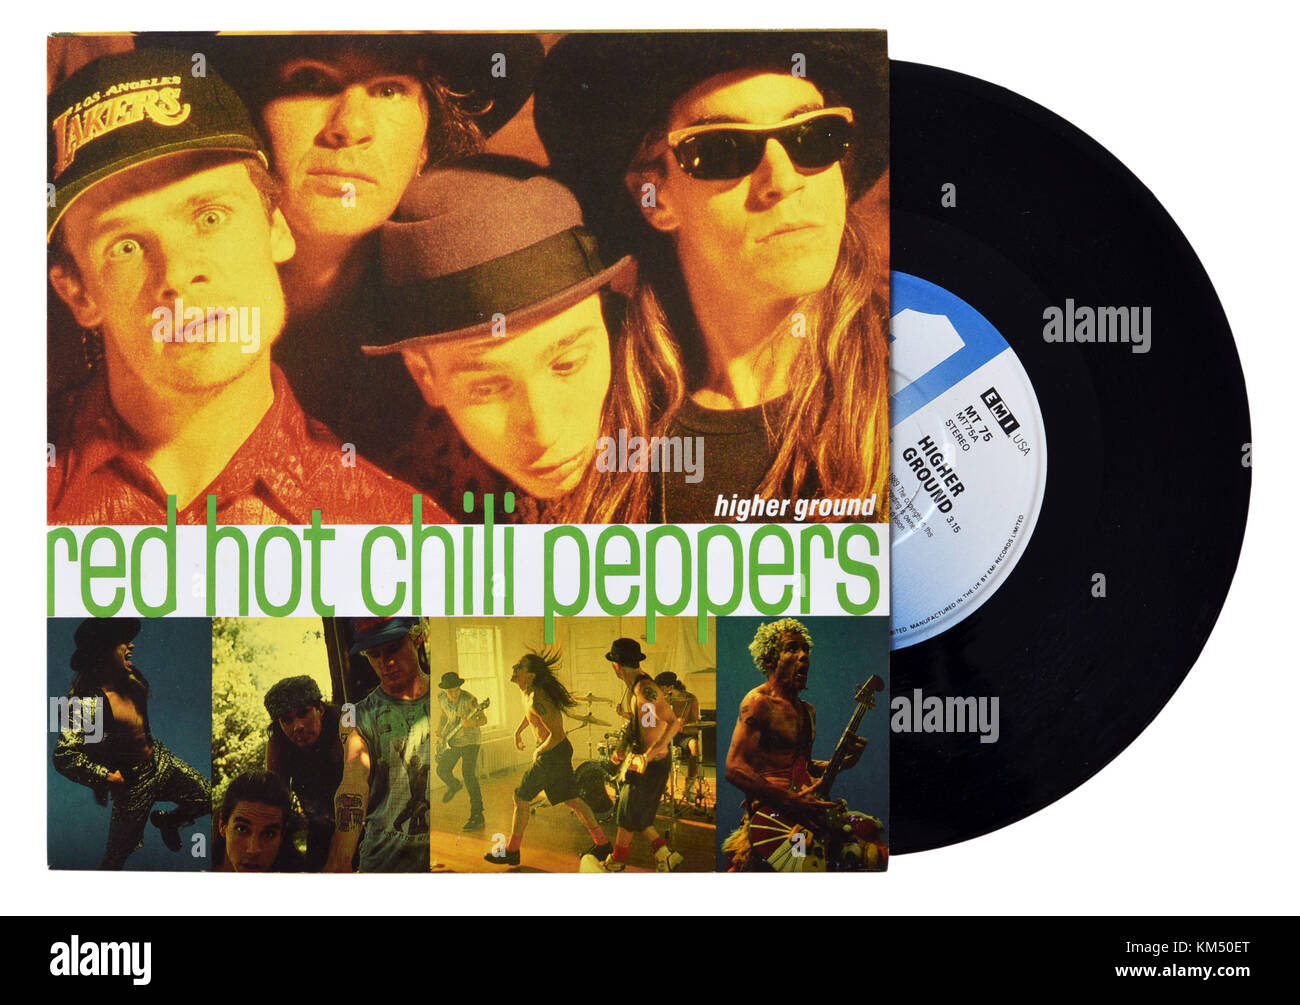 Red Hot Chili Peppers Higher Ground seven inch single - Stock Image